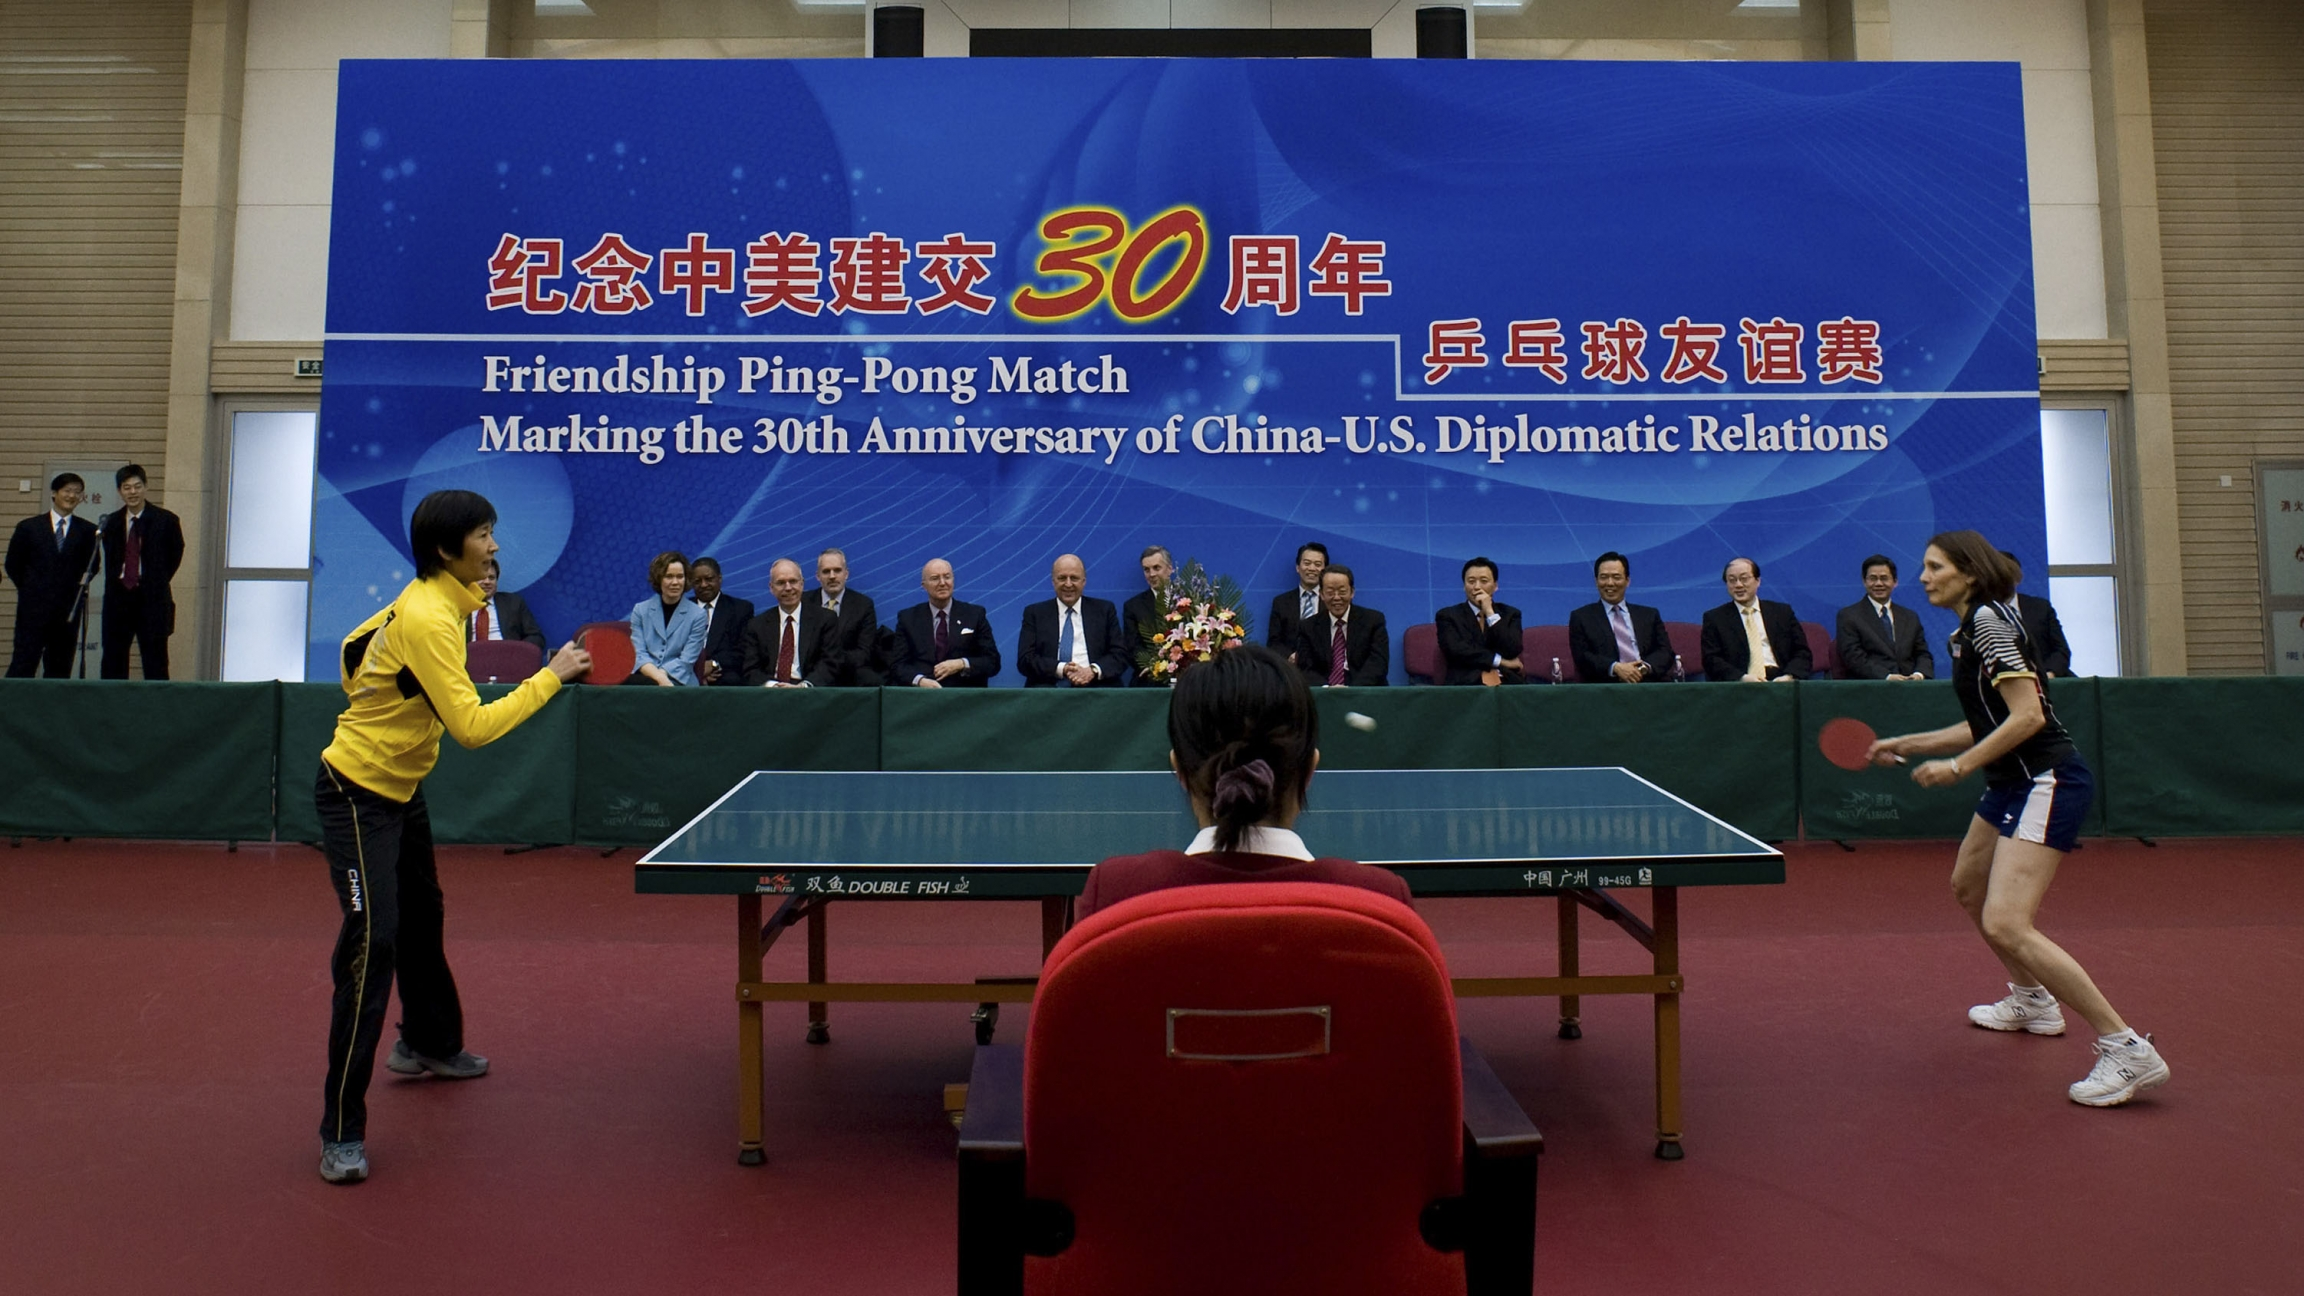 Table top tennis players compete in front of a large blue banner